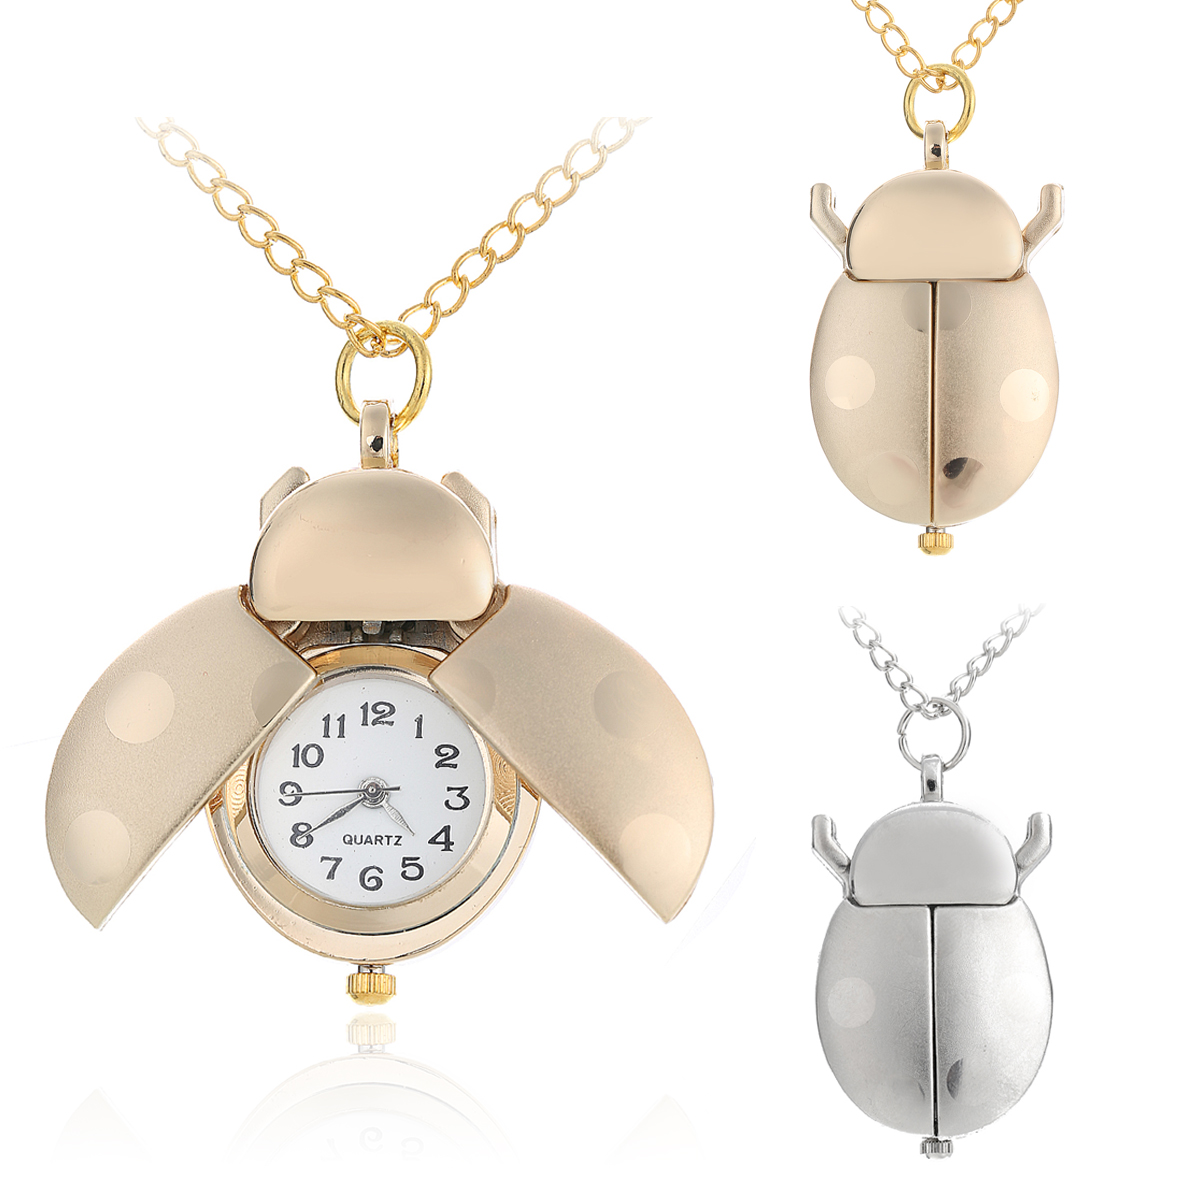 Gold/Silver Beetle Pocket Watch Womens Girl Small Animal Necklace Pendant Quartz Shellhard Ladybug Fob Pocket Watch with Chain big g quartz pocket watch lot with metal pocket necklace leather chain box bag p446ckwb